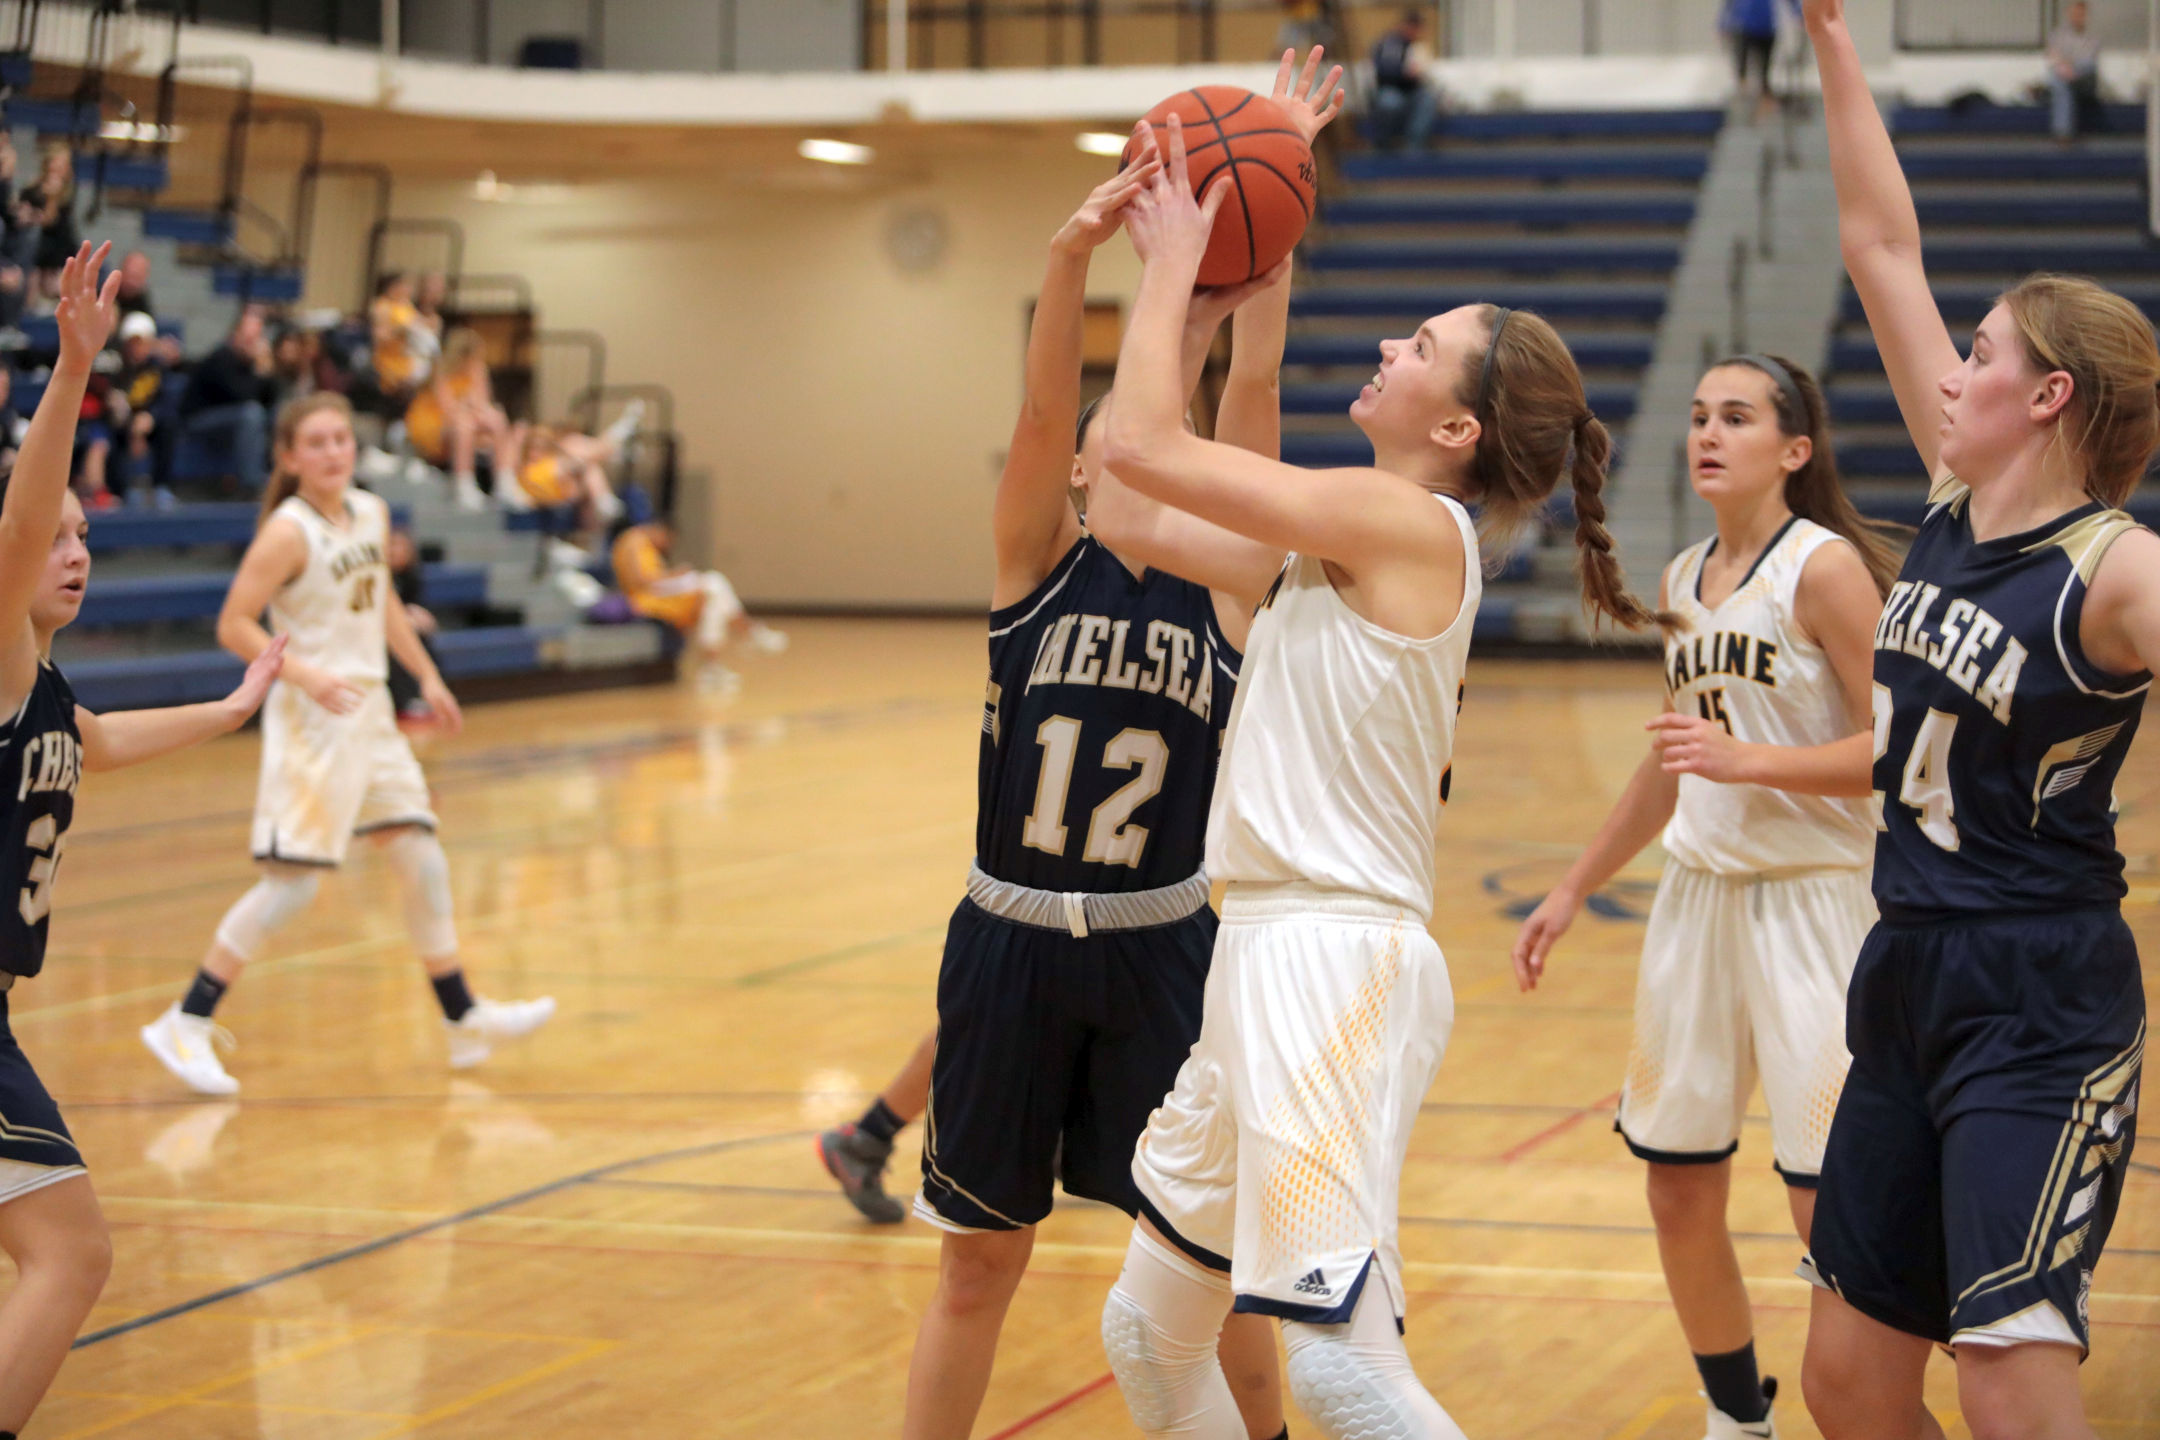 The Saline Post: Stemmer, Bauer Lead Saline to Victory Over Ypsilanti